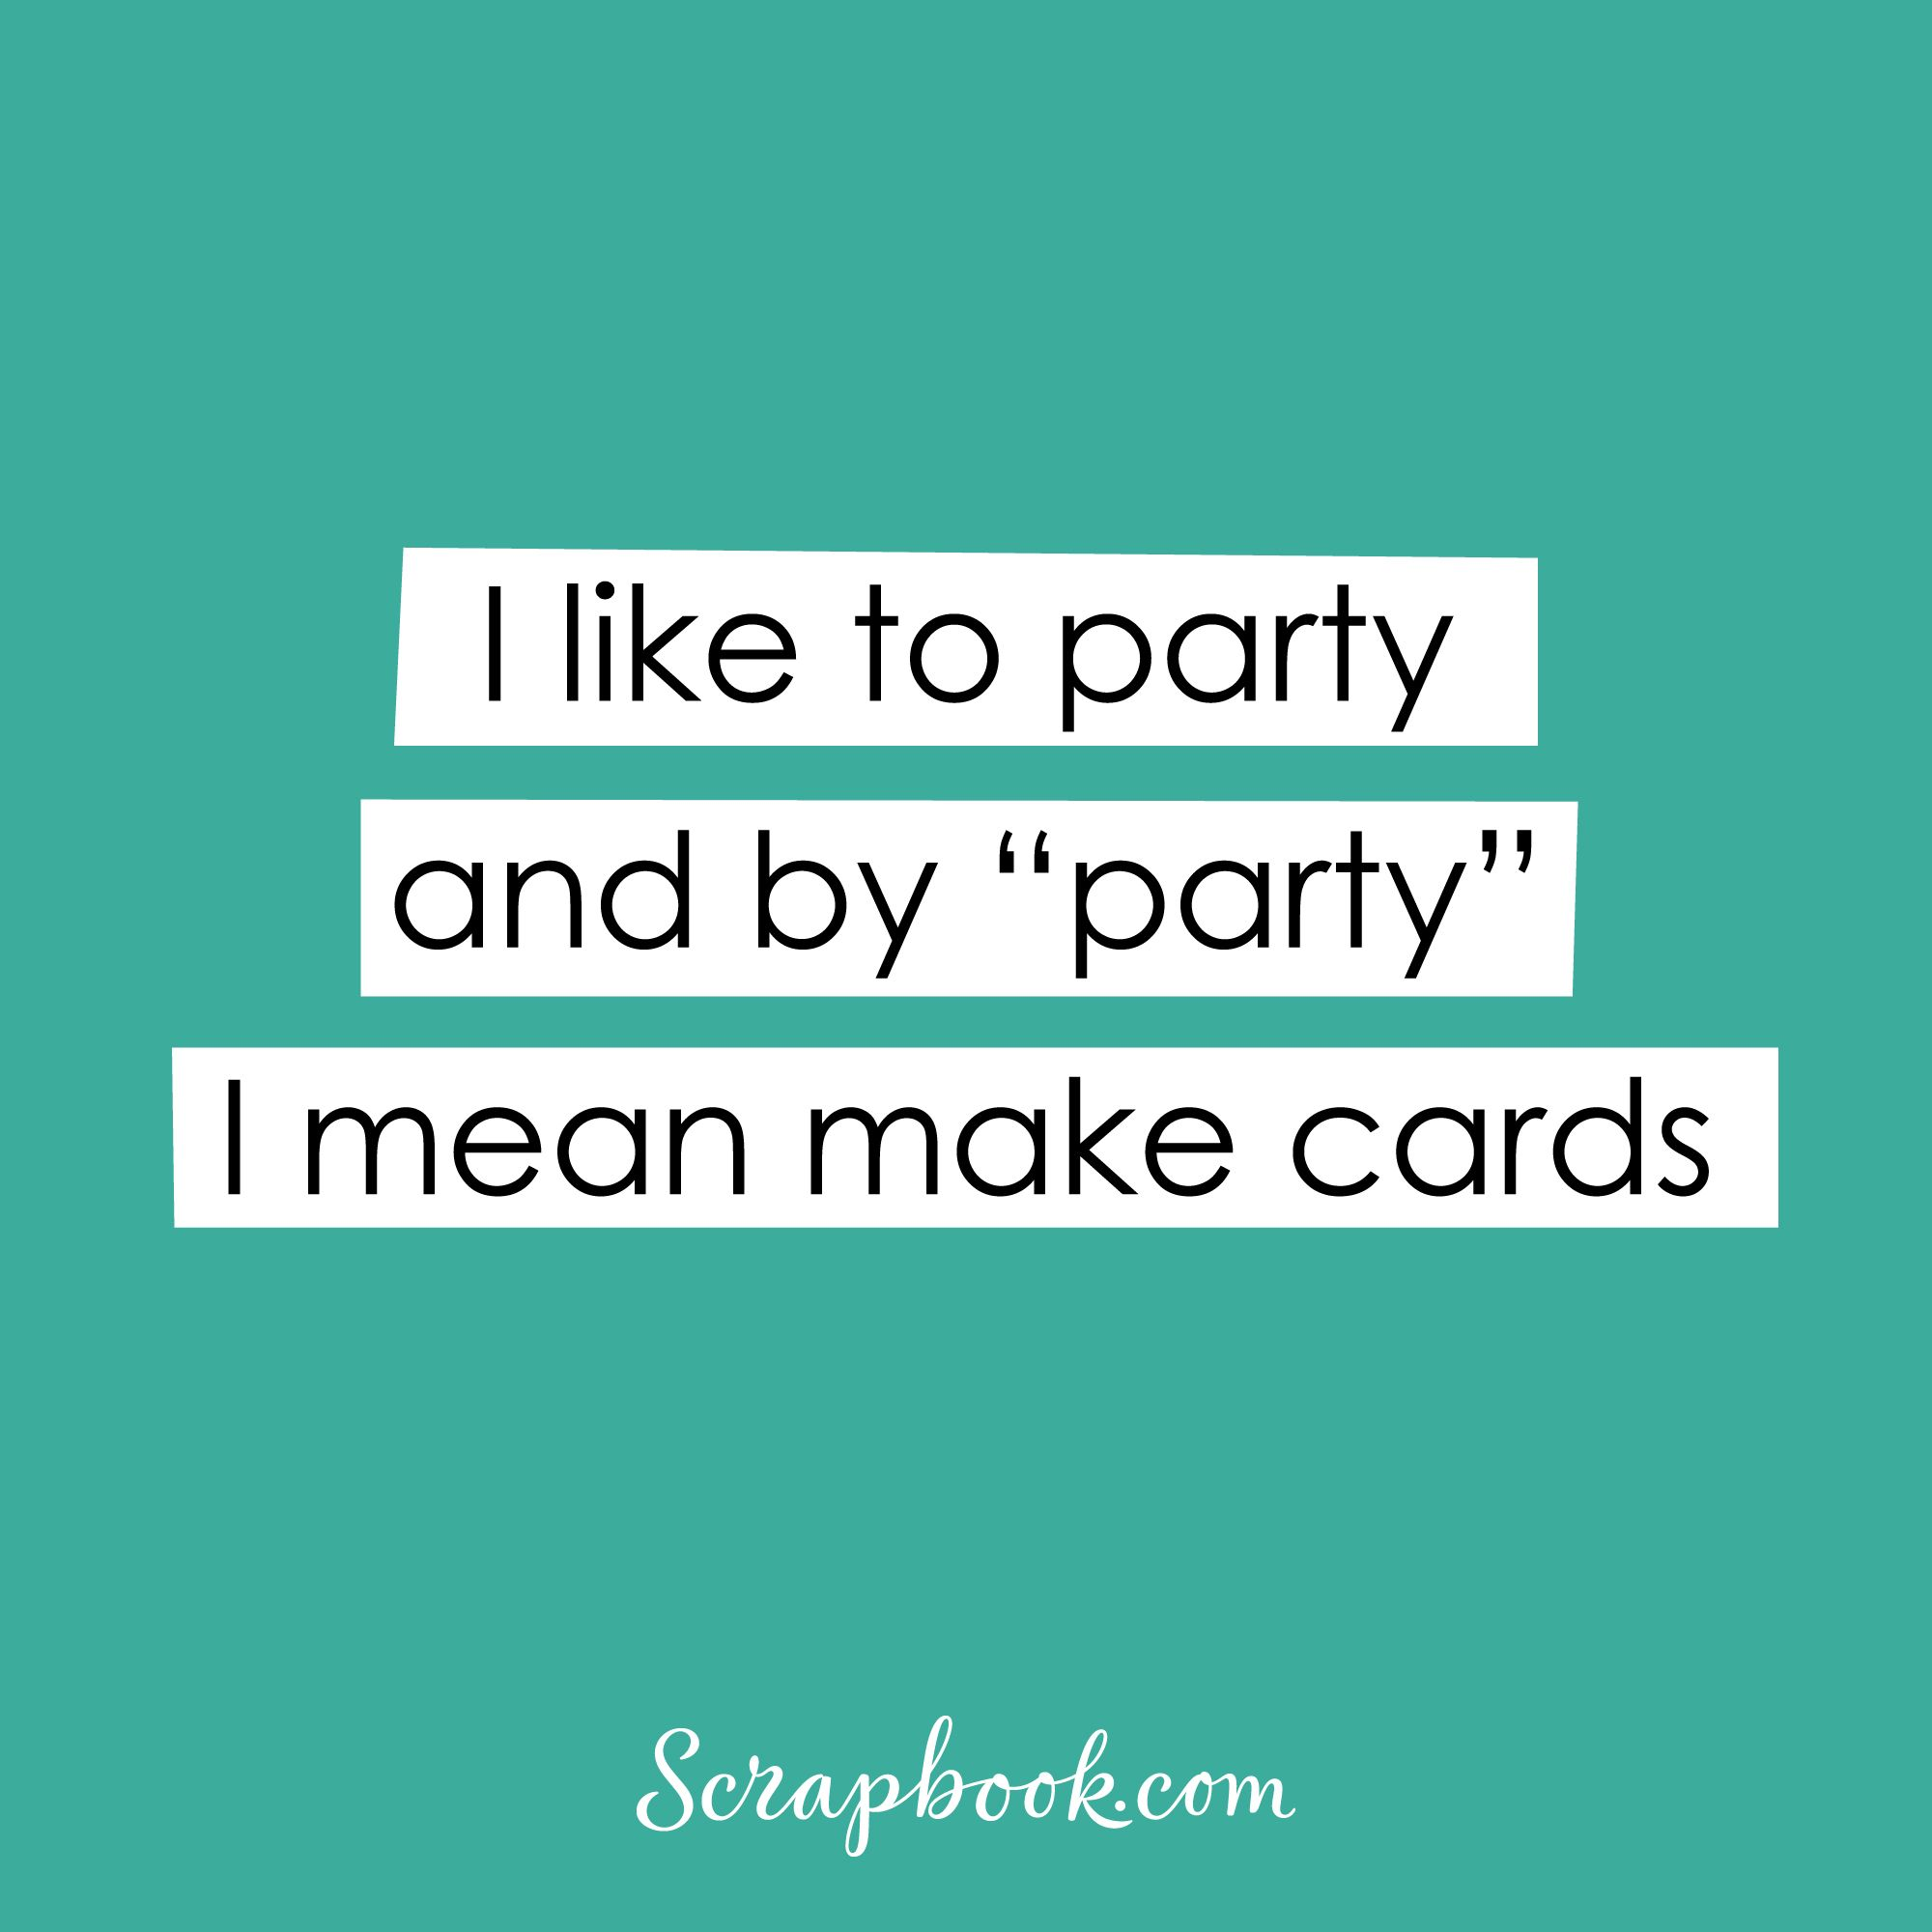 Creative Funny And Inspiring Craft Quotes Craft Quotes Creativity Quotes Inspirational Quotes